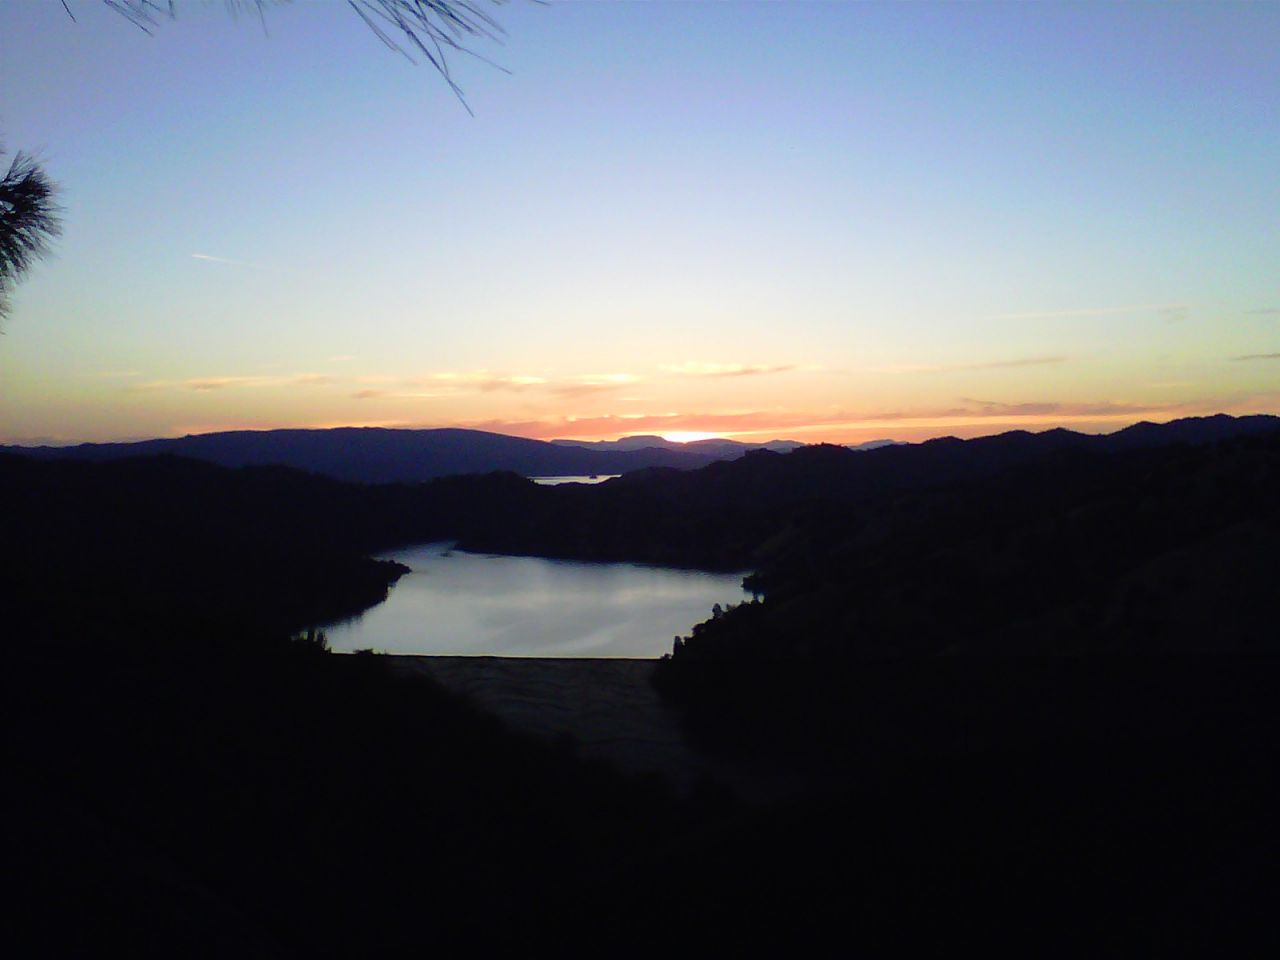 Overlooking Lake Berryessa